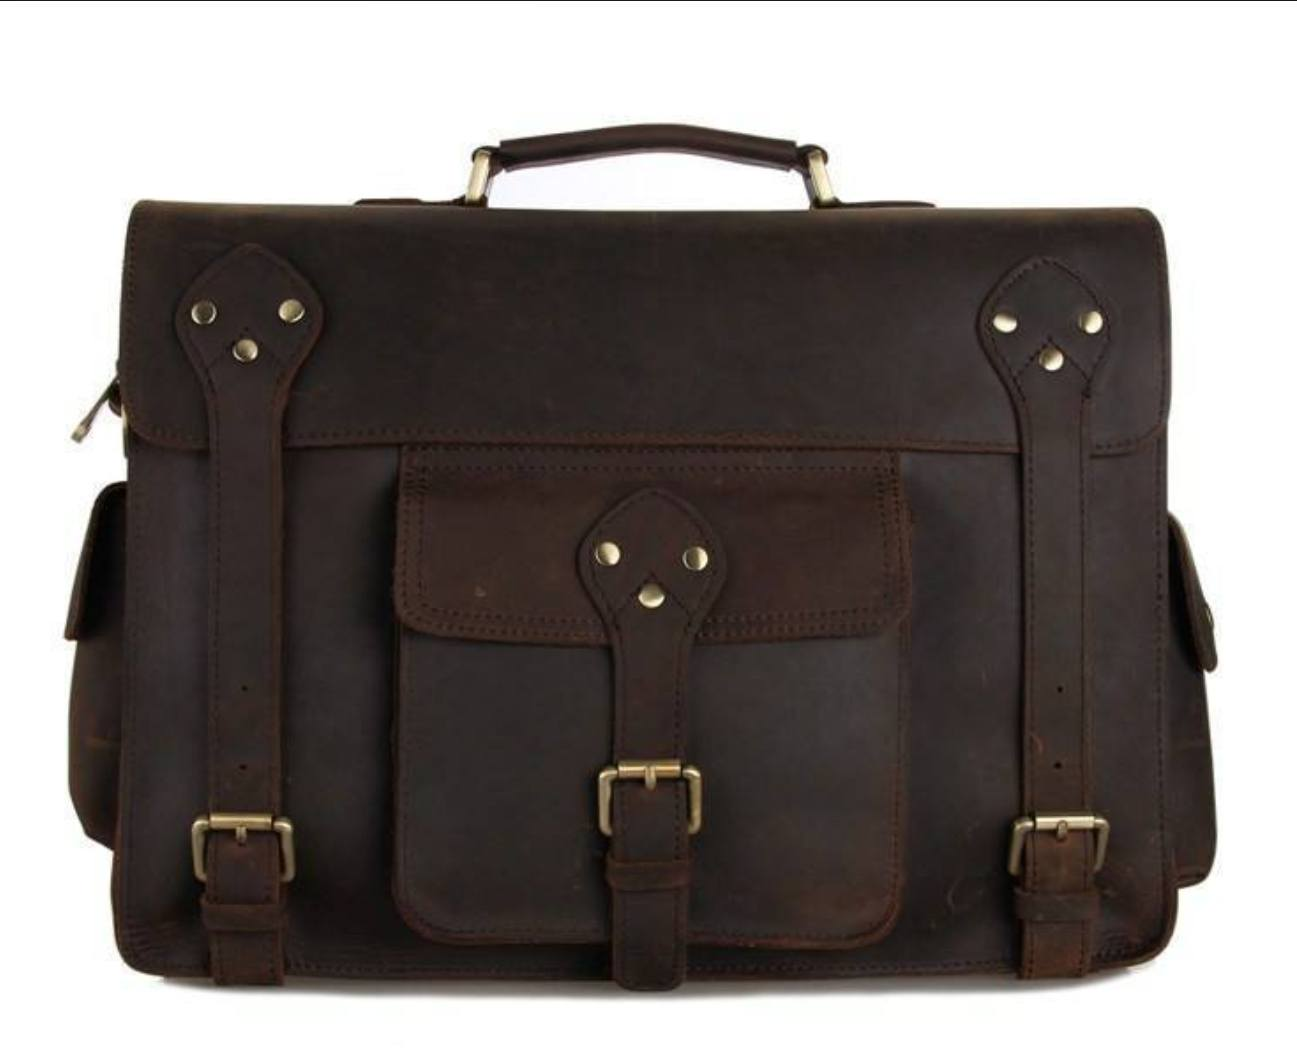 bdd289e689 Clean Vintage Mens  Genuine Leather Briefcase Messenger Bag- Fits 13 Inch  Laptops - Clean